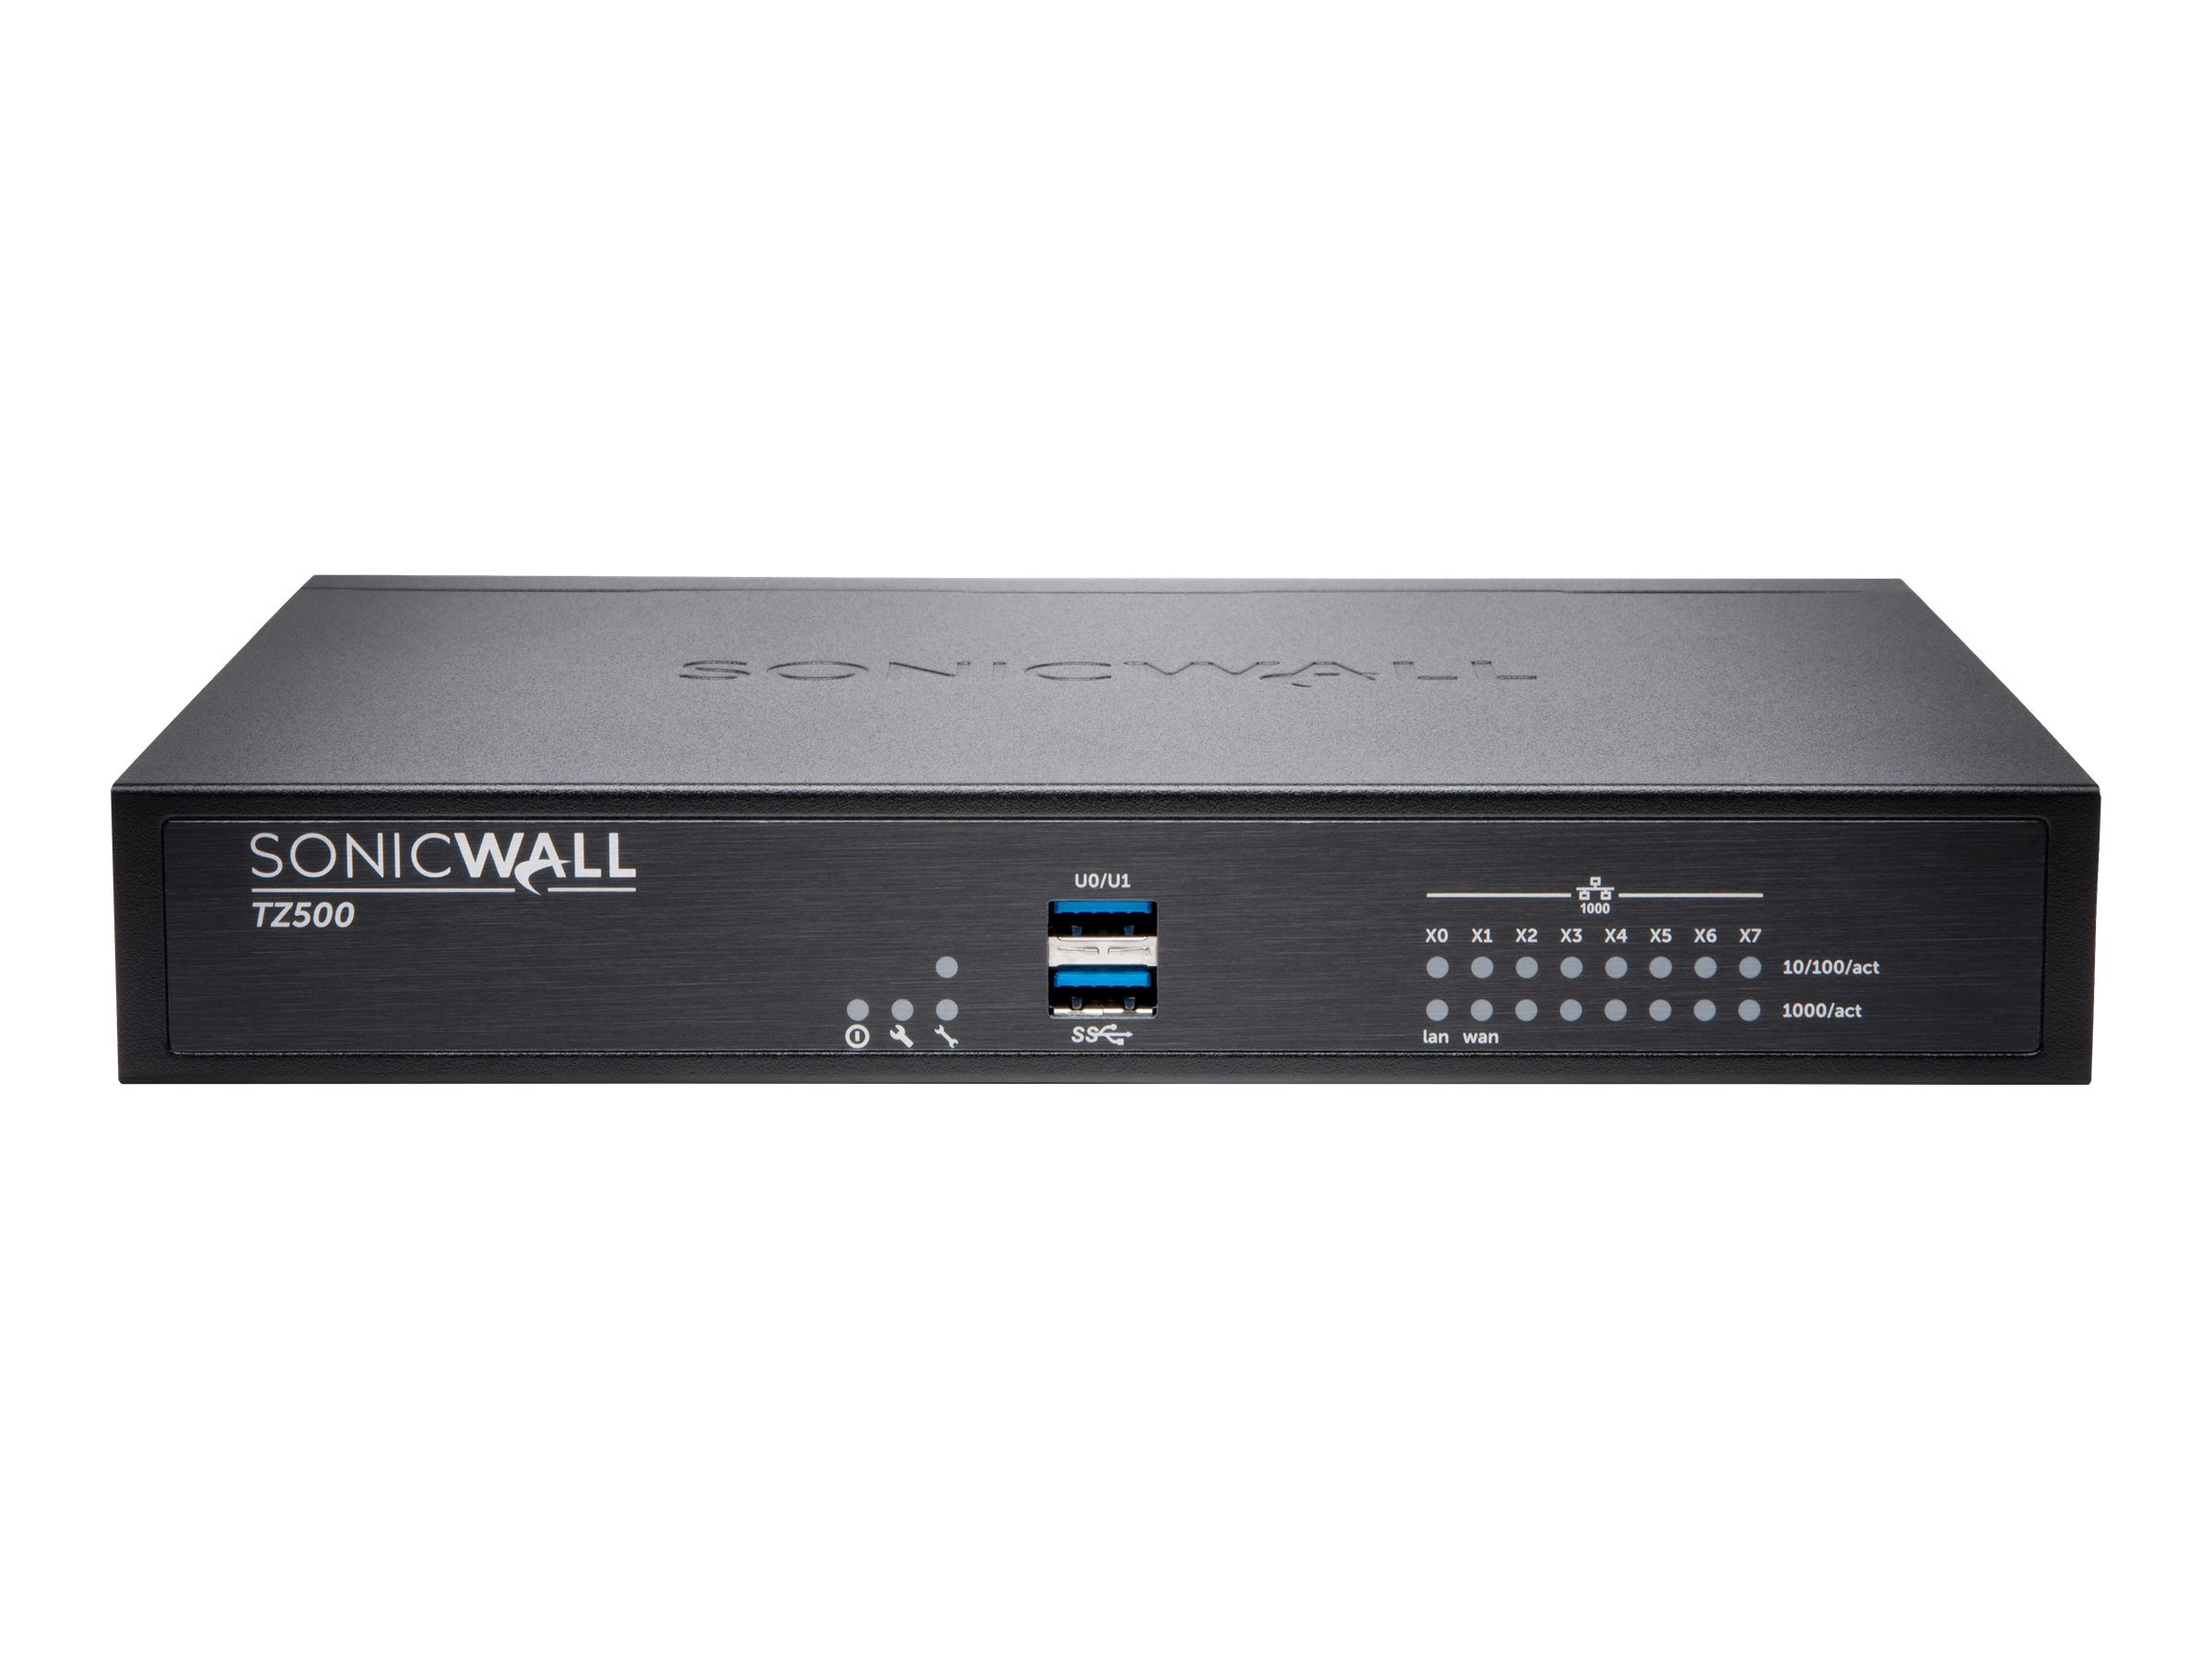 SonicWALL 01-SSC-0428 Image 2